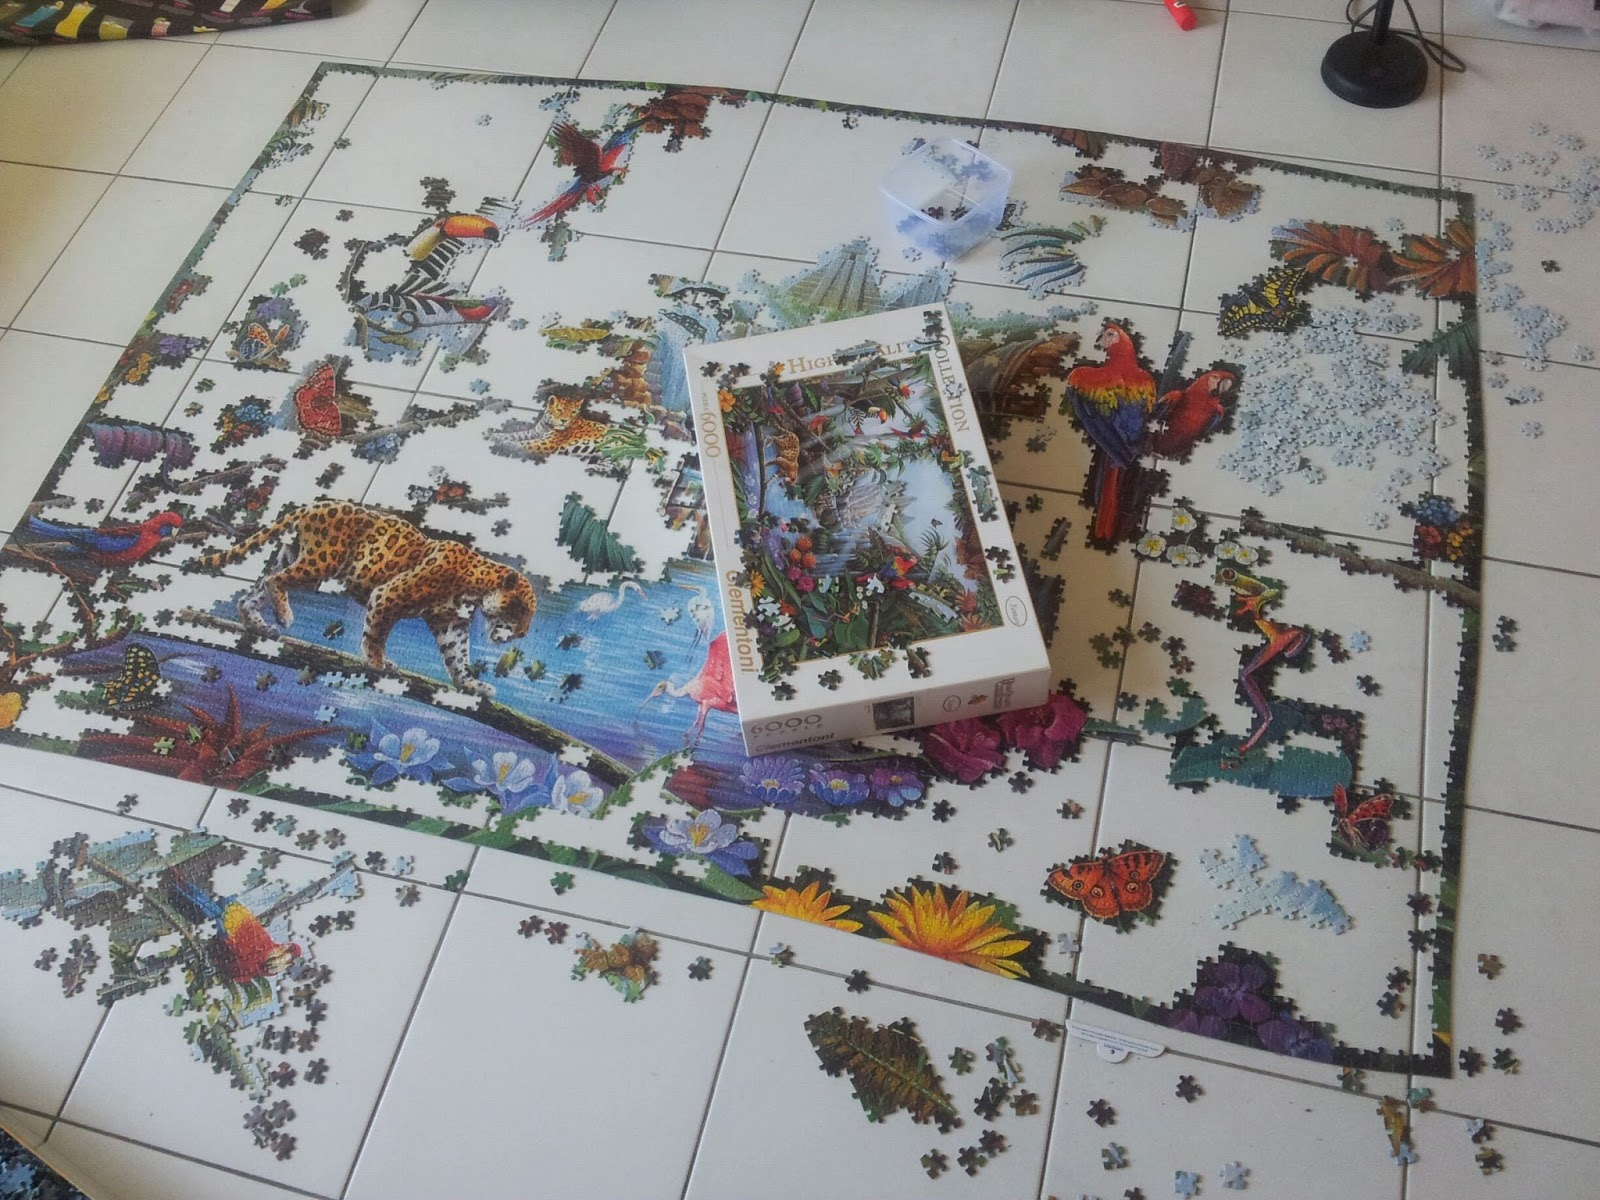 Pieces scattered everywhere!